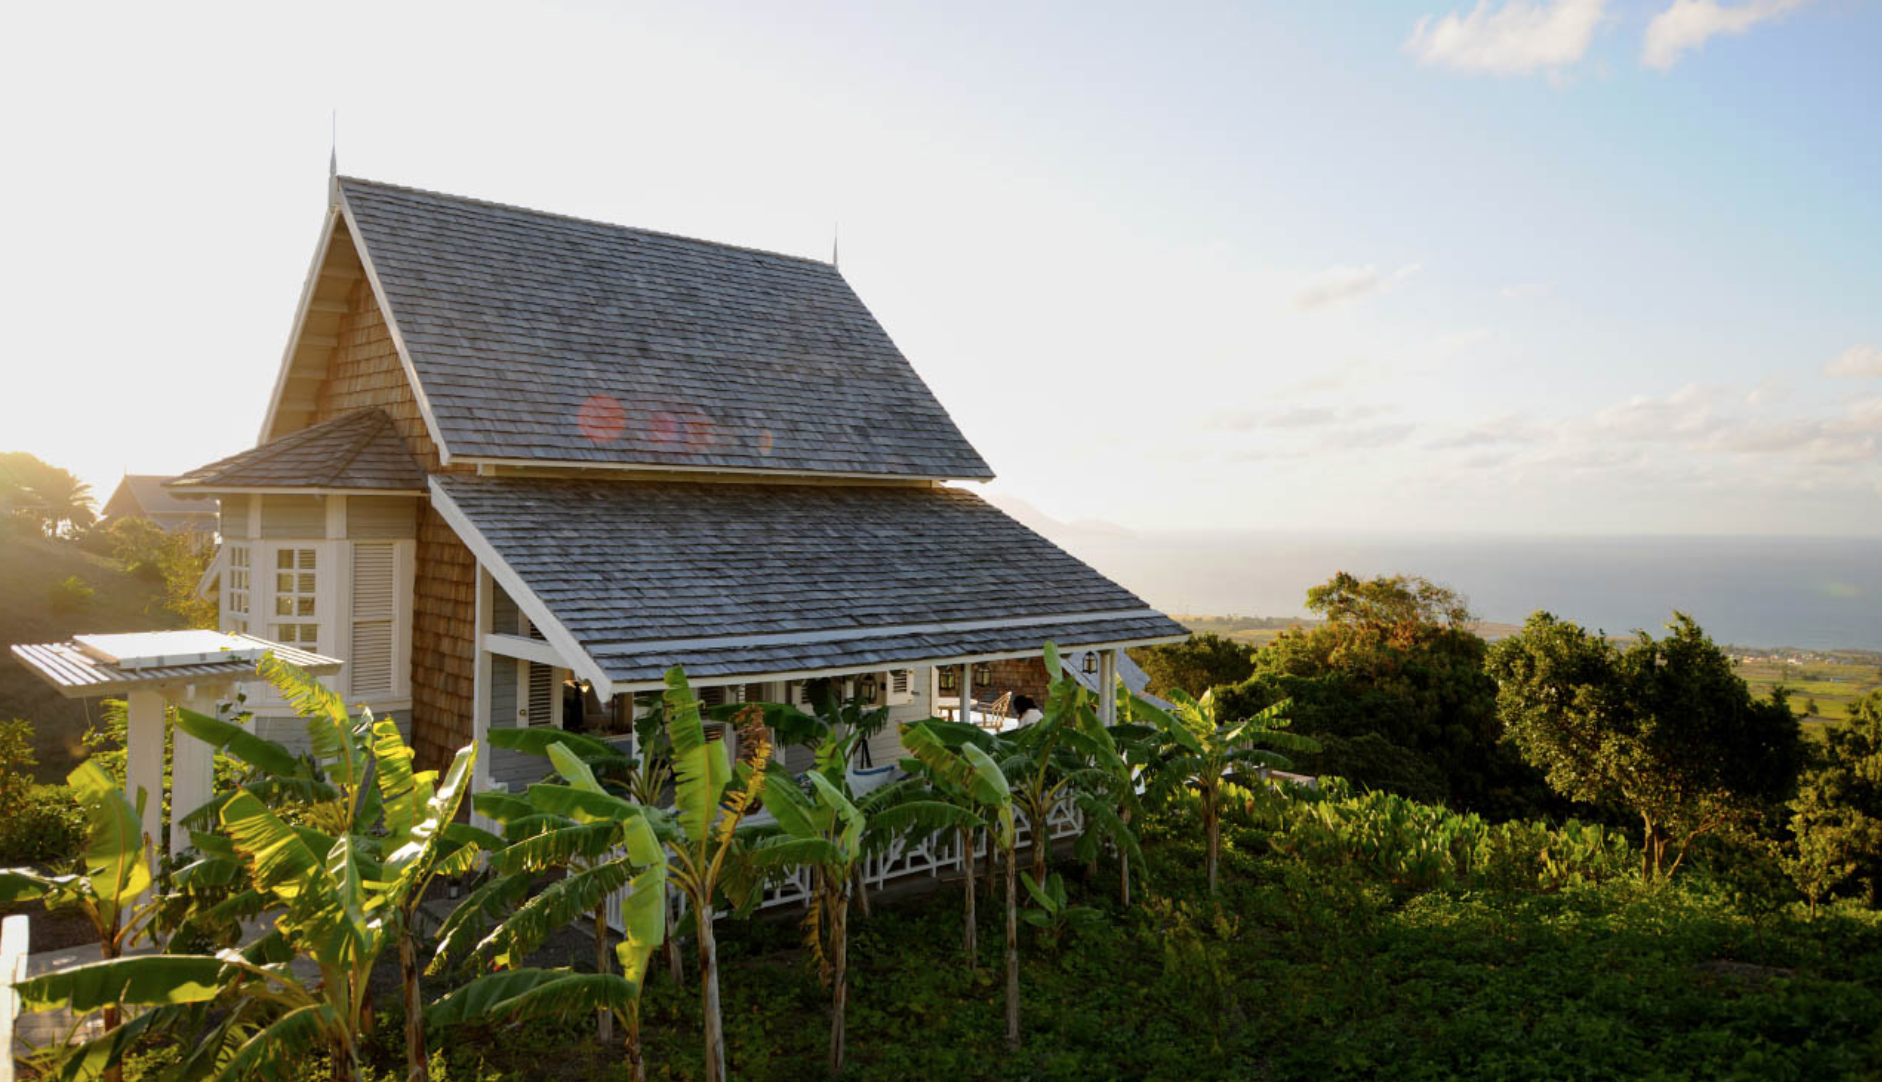 Kittitian Hill: St. Kitts, West Indies